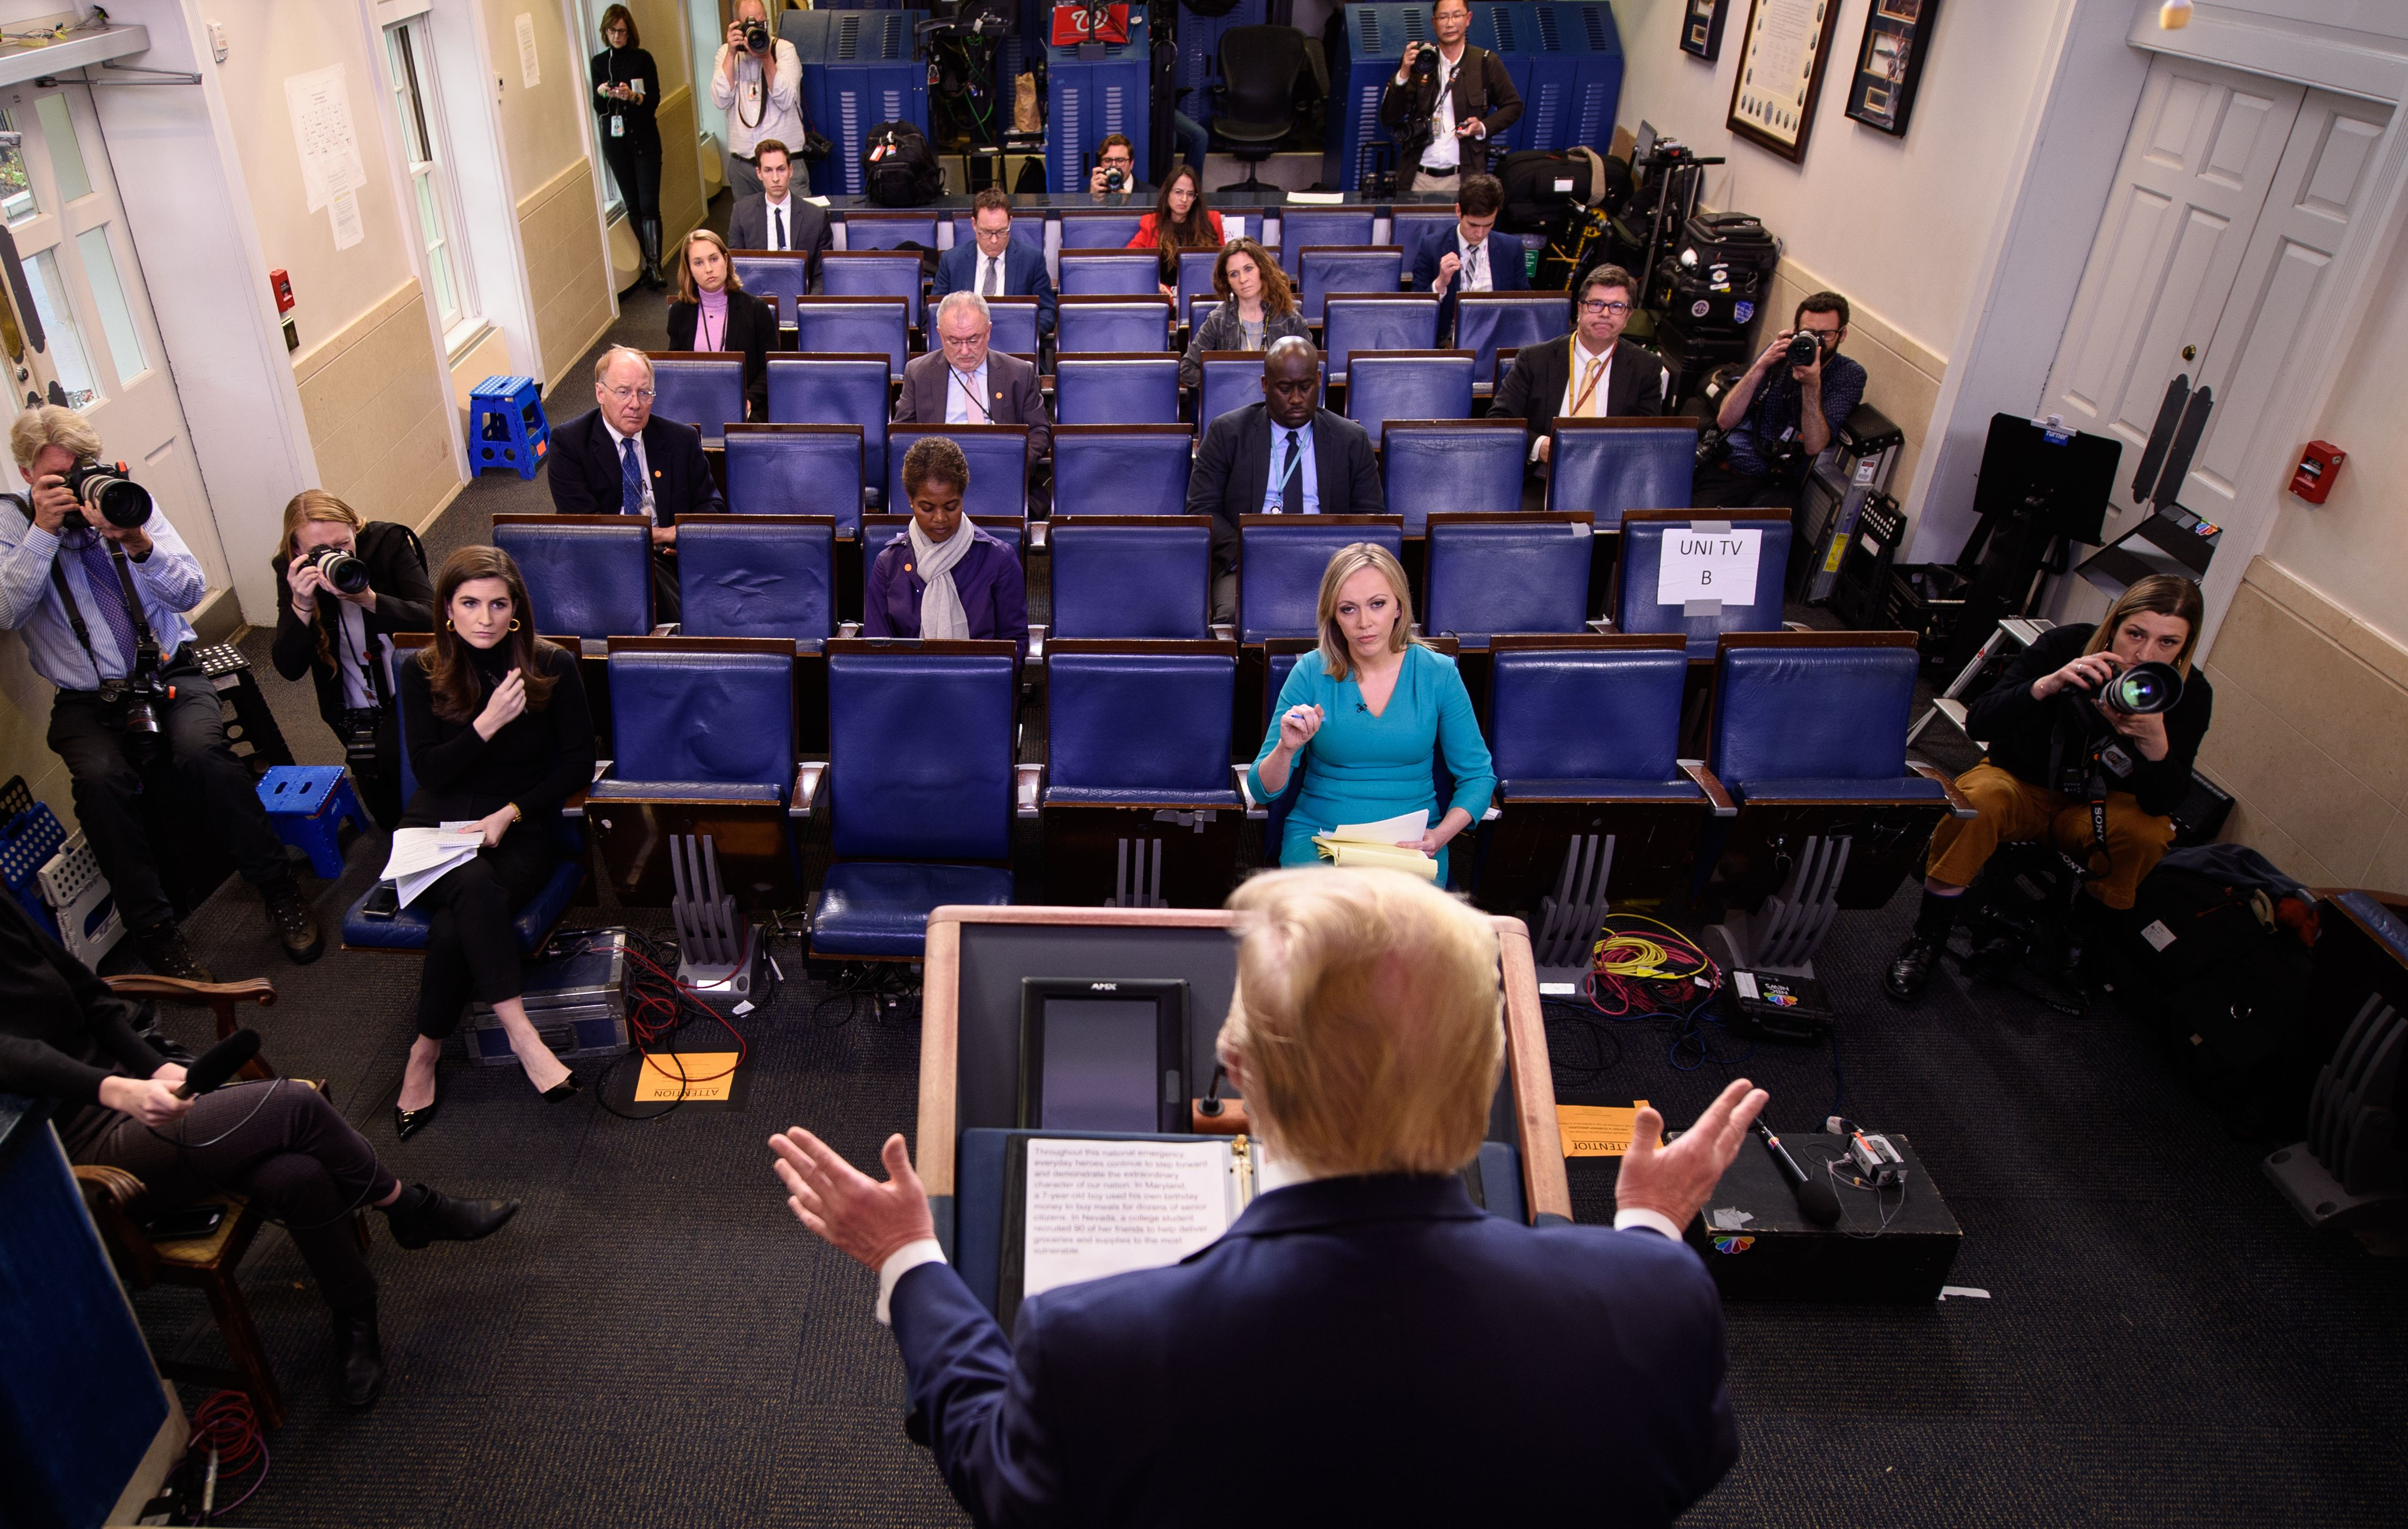 US President Donald Trump speaks during the daily briefing on the novel coronavirus, COVID-19, in the Brady Briefing Room at the White House on March 25, 2020, in Washington, DC. (MANDEL NGAN/AFP via Getty Images)